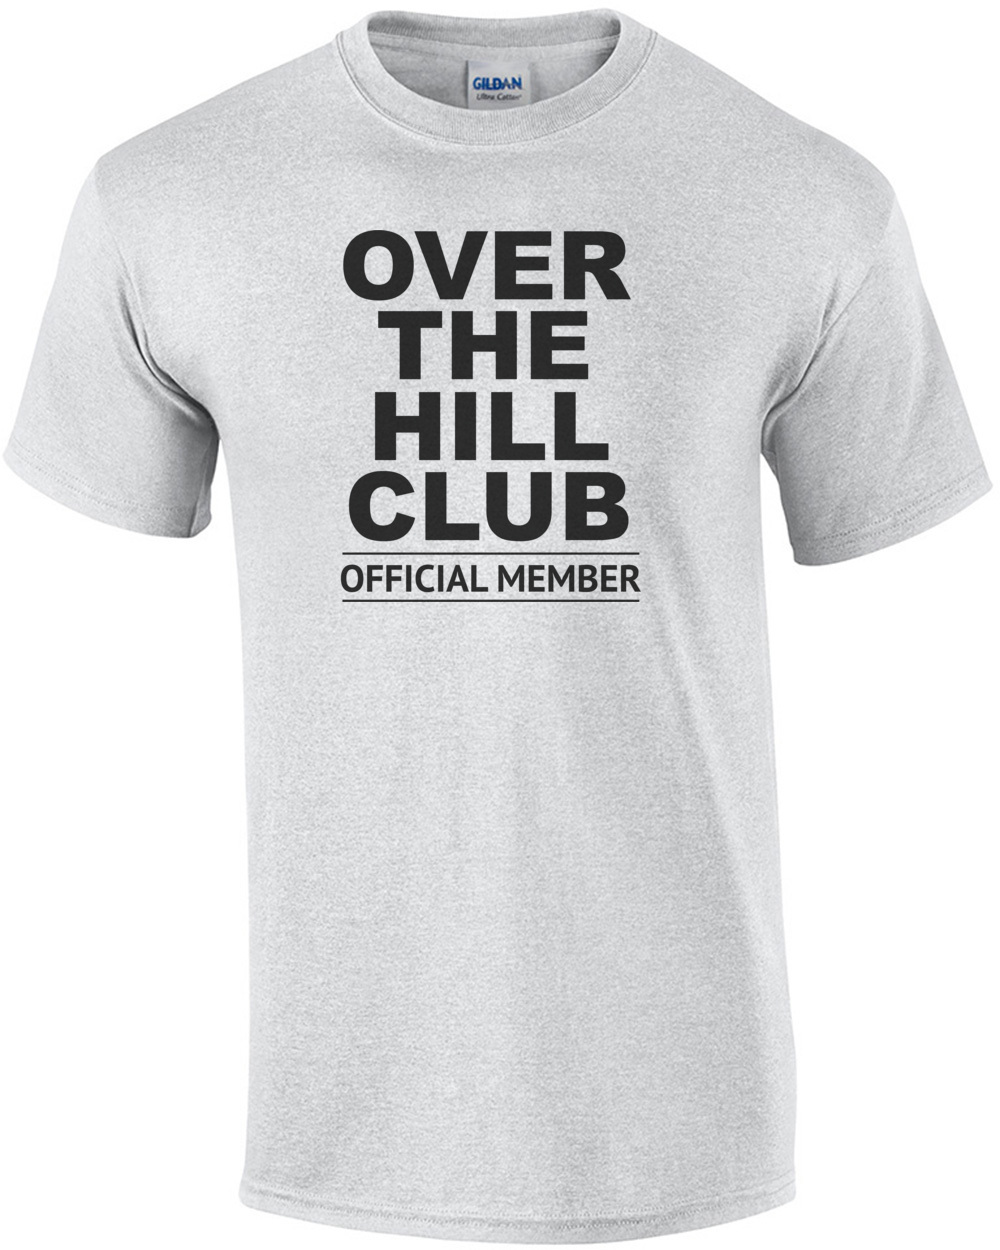 Over The Hill Club Official Member 40th Birthday Tshirt Mens Regular Ash